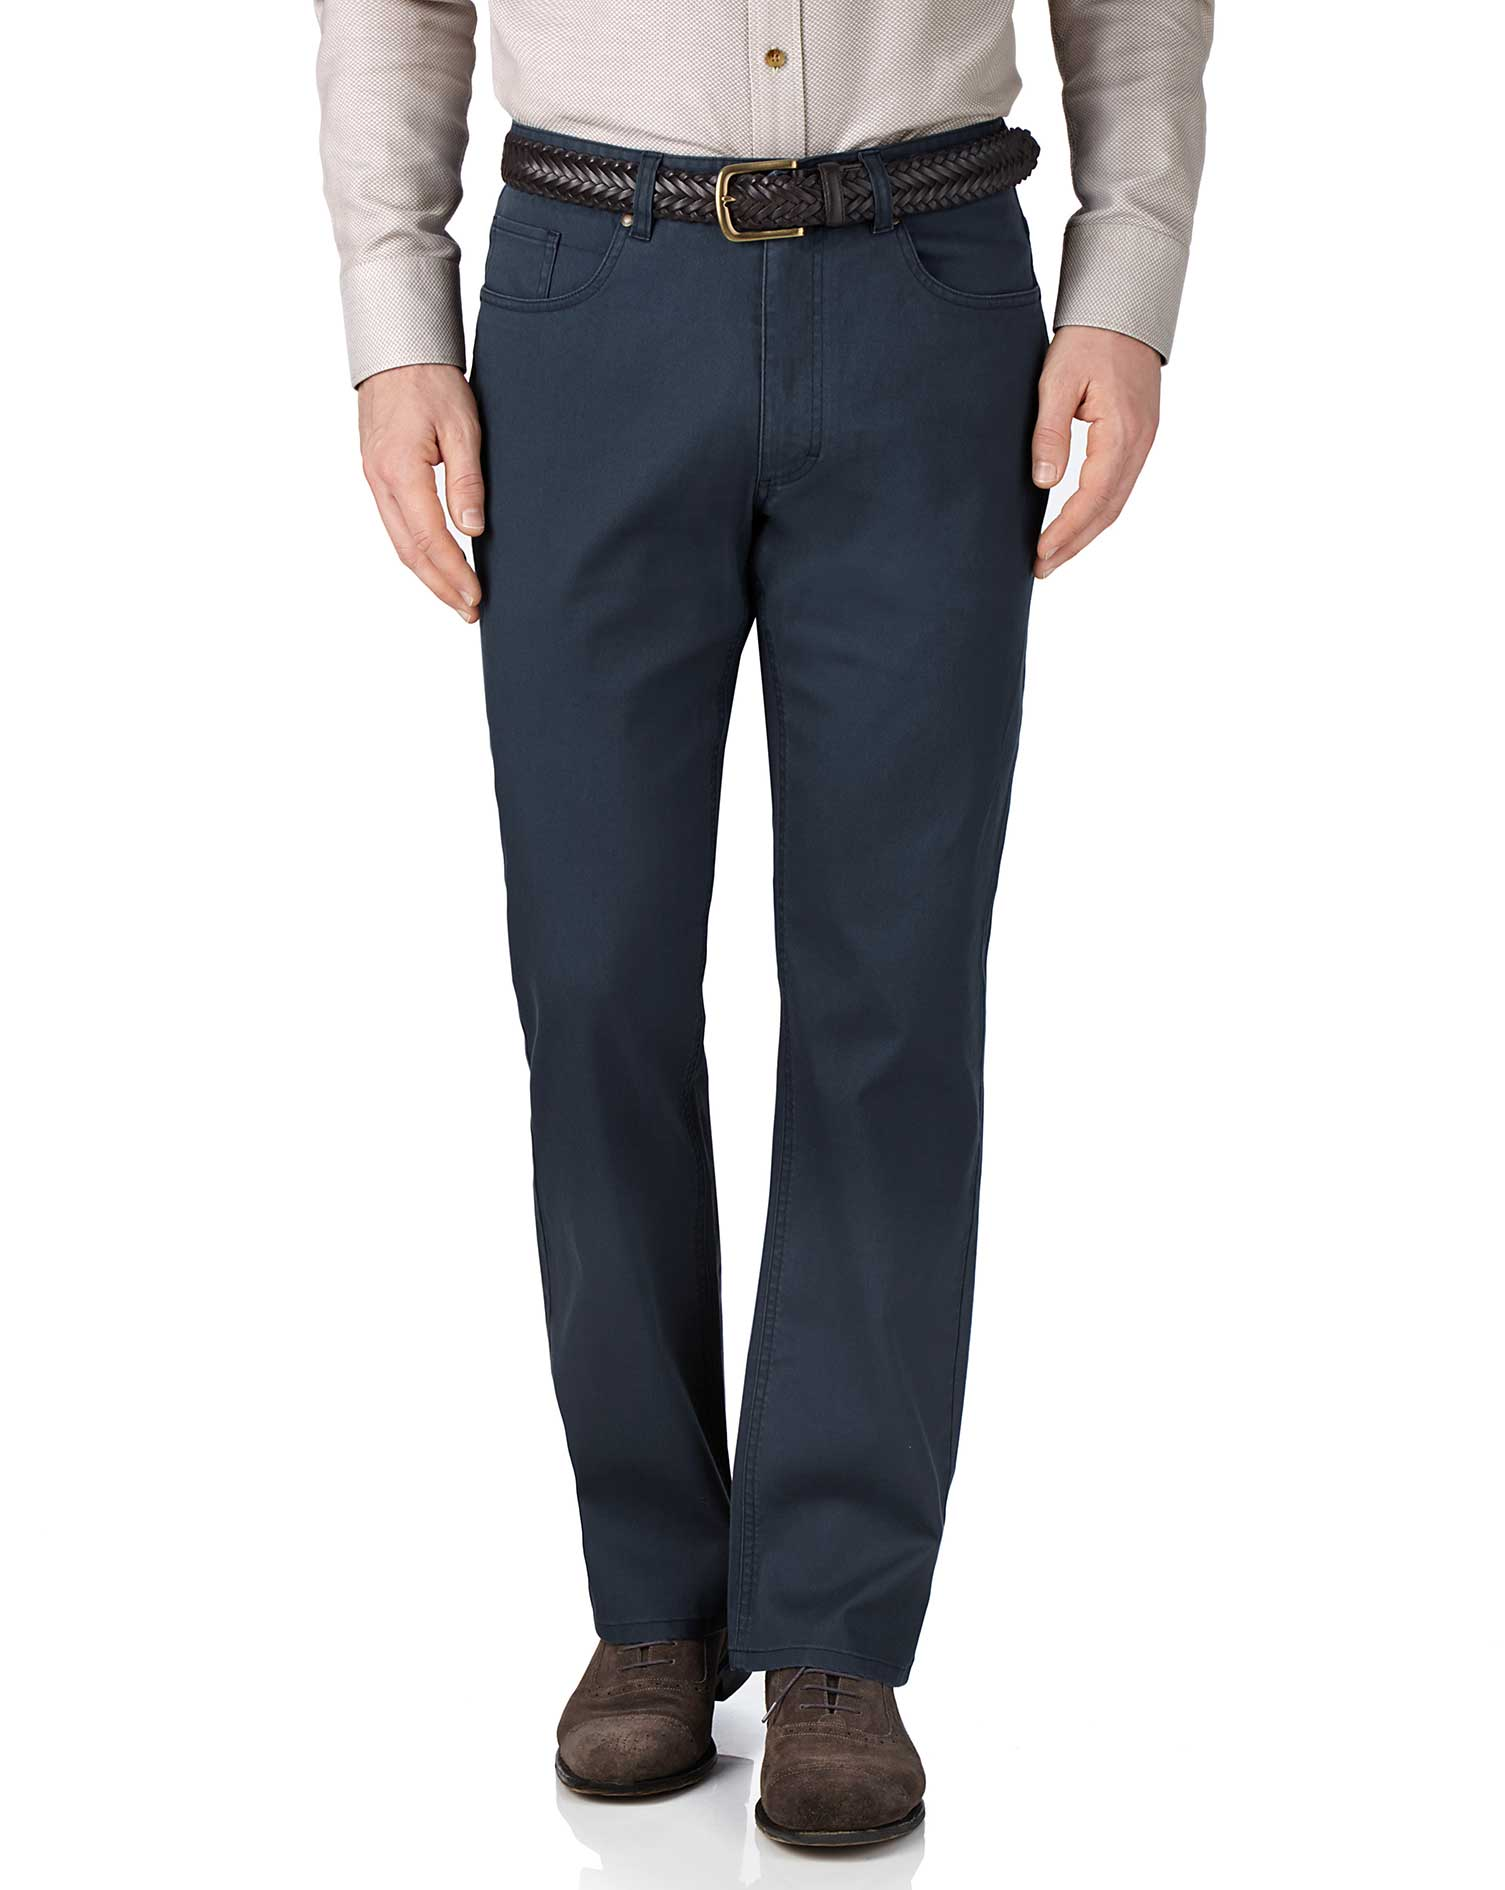 Blue Classic Fit Stretch Pique 5 Pocket Trousers Size W42 L34 by Charles Tyrwhitt